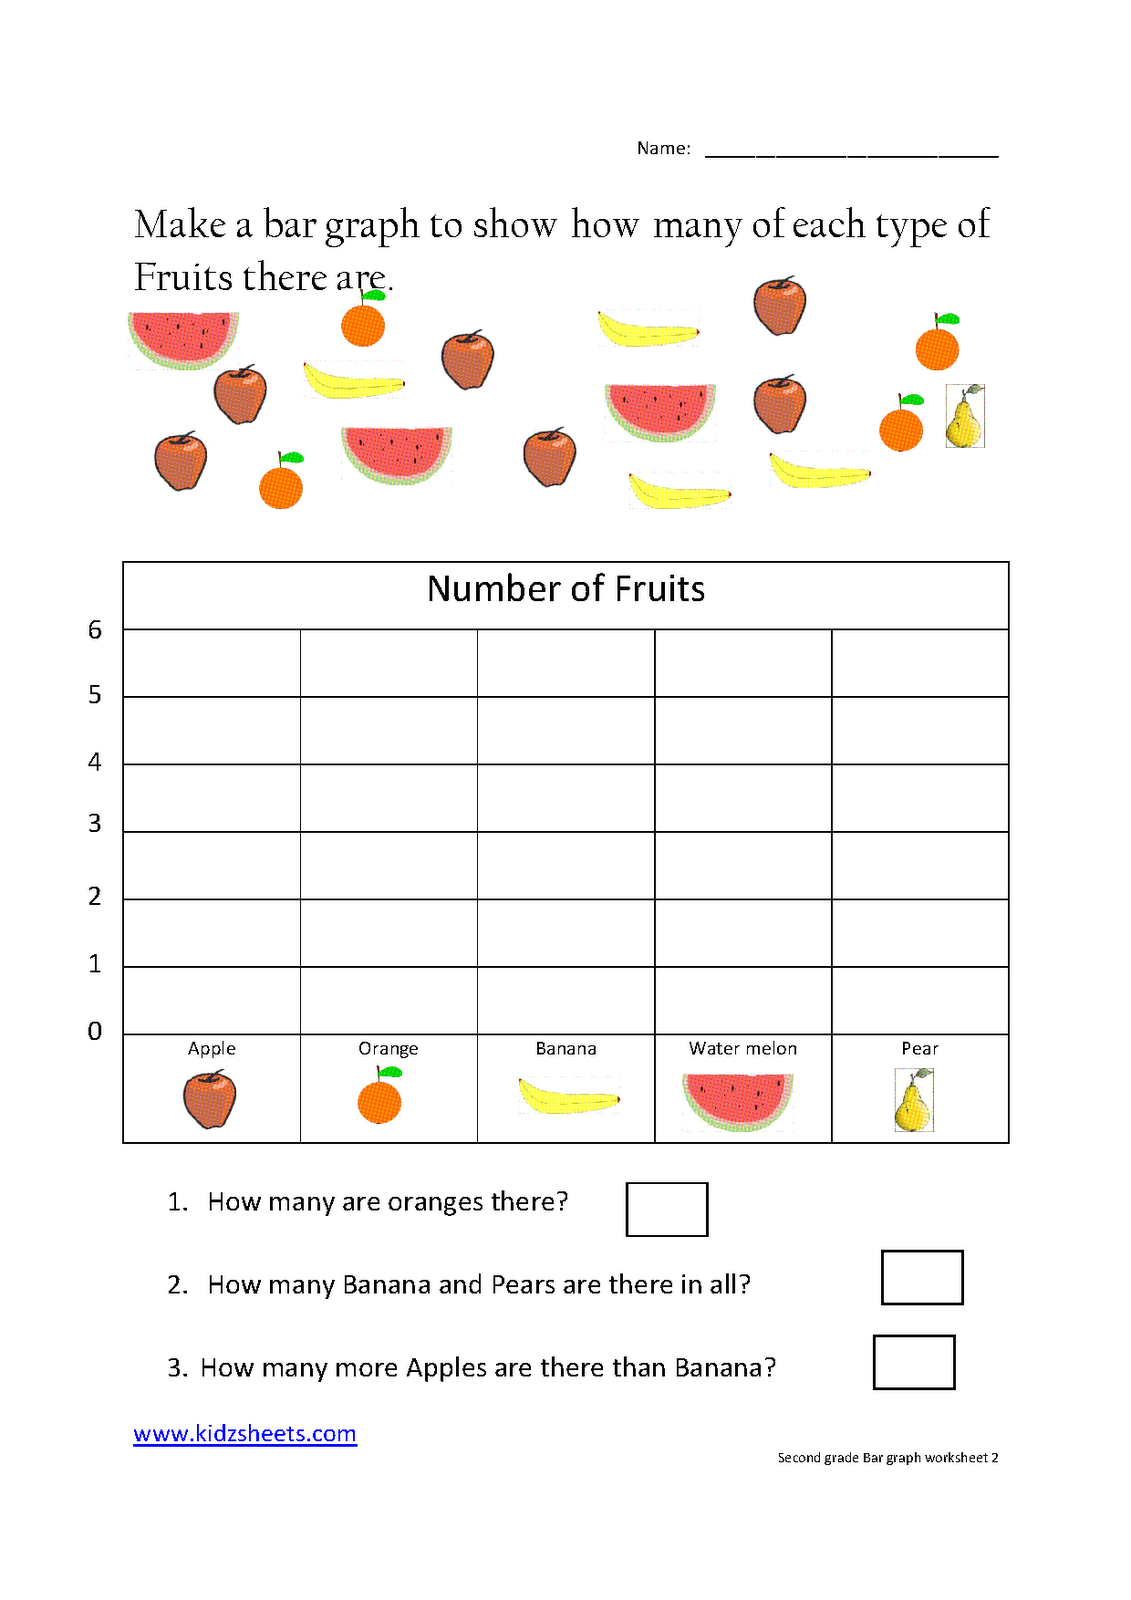 Bar Graph Worksheets 2nd Grade To Free   Math Worksheet for Kids furthermore Bar Graph Worksheets   Free    monCoreSheets moreover Making Graphs Worksheets Making Bar Graphs Worksheets 2 as well  furthermore Graphing Worksheets 2nd Grade Blank Tally Chart Template Free Unique together with Bar Graph Worksheet Math Bar Graph Worksheet Free Kindergarten Math further  likewise Bar Graph Reading Graphs Worksheets High 1st Grade further Bar Graphs 2nd Grade as well Reading Bar Graphs Kindergarten And Creating Printable Blank Graph also Bar Graphs First Grade as well 2nd grade  3rd grade Math Worksheets  Reading bar graphs and also  moreover Bar Graph Worksheets also 2nd grade  3rd grade Math Worksheets  Reading bar graphs   Greats besides Free Reading and Creating Bar Graph Worksheets. on bar graph worksheet 2nd grade